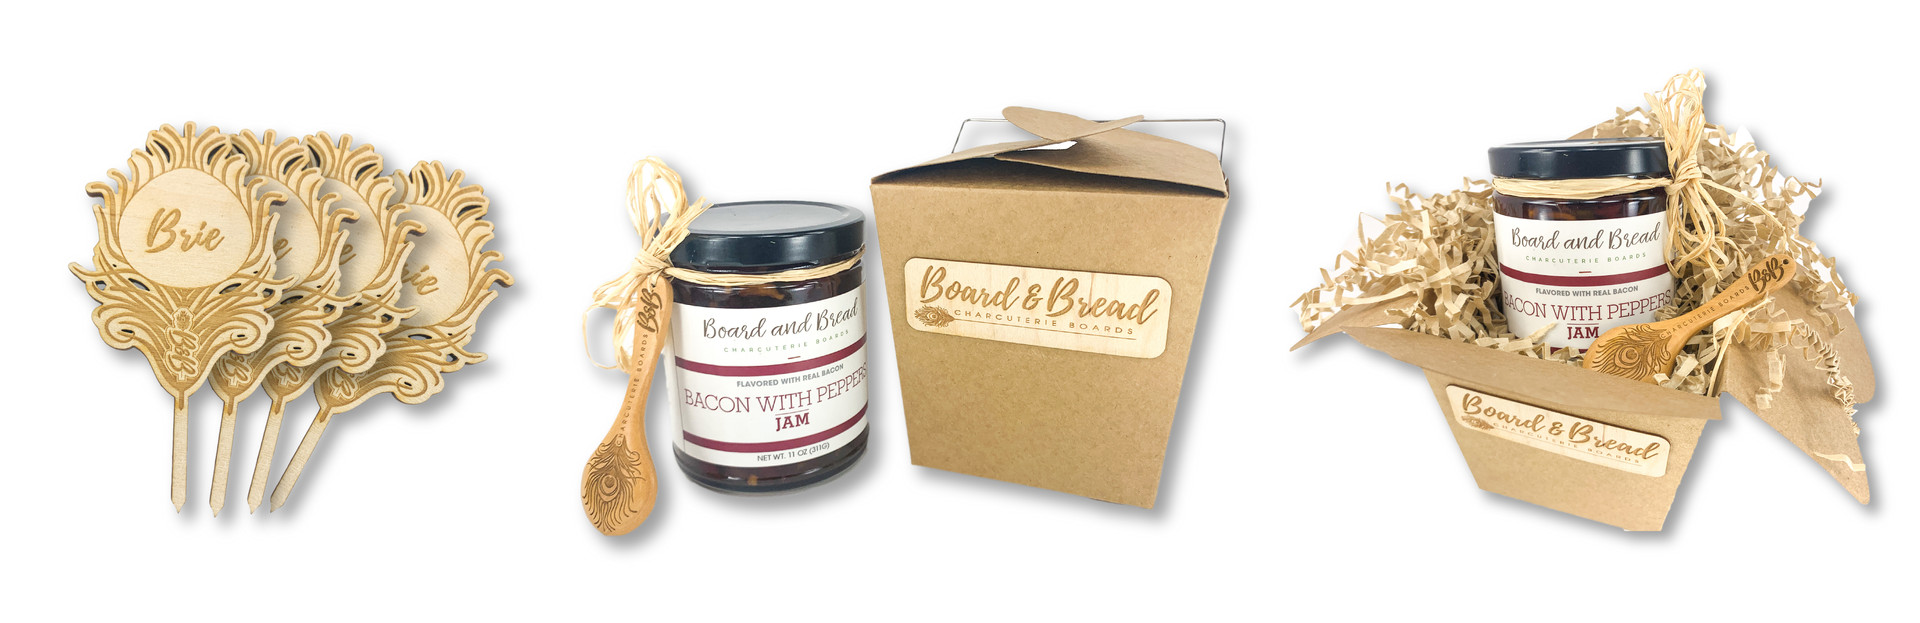 PRODUCT PACKAGING | BOARD & BREAD CHARCUTERIE